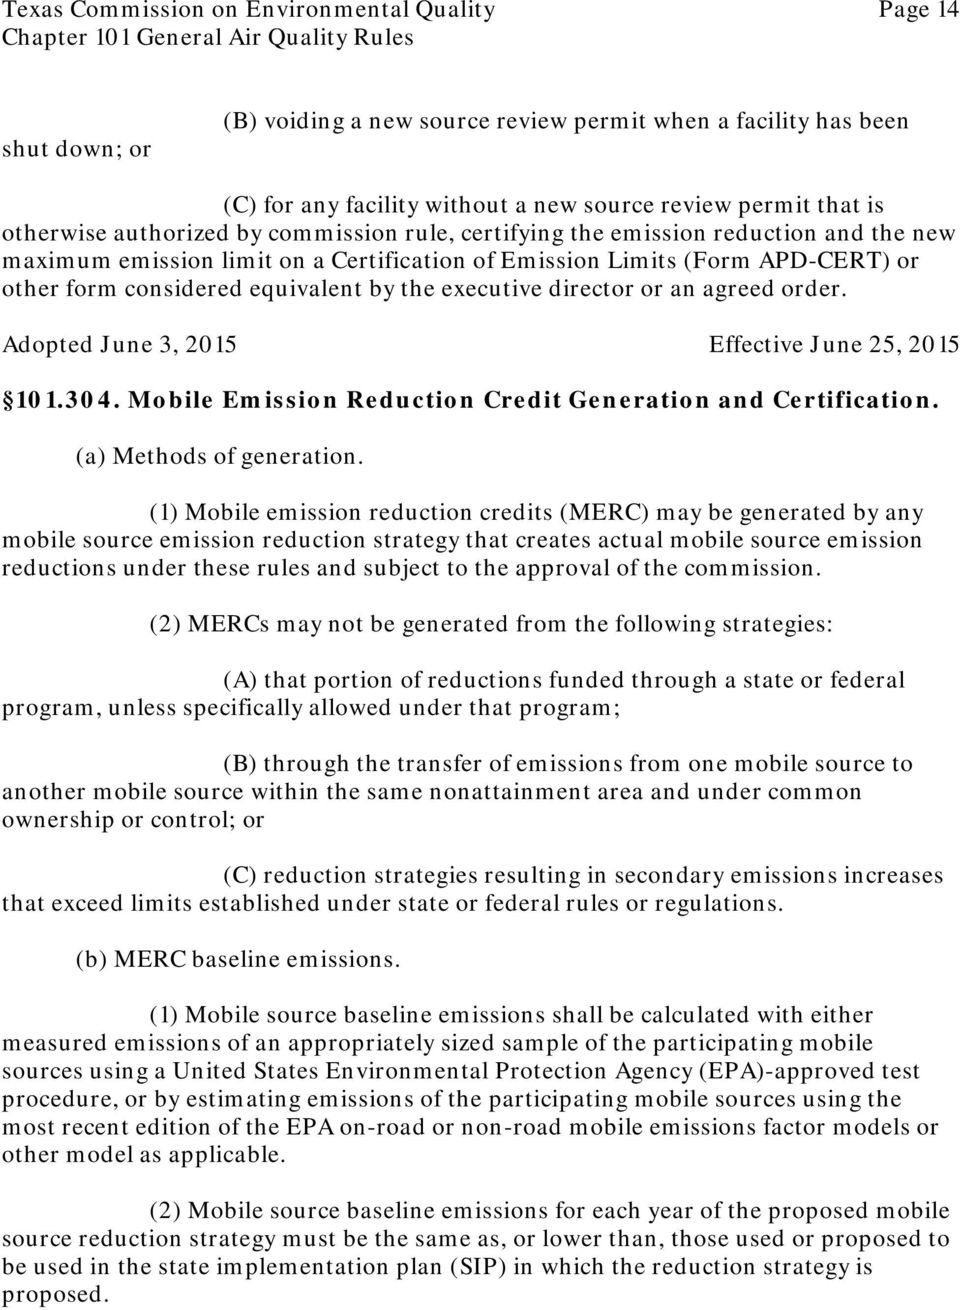 by the executive director or an agreed order. Adopted June 3, 2015 Effective June 25, 2015 101.304. Mobile Emission Reduction Credit Generation and Certification. (a) Methods of generation.